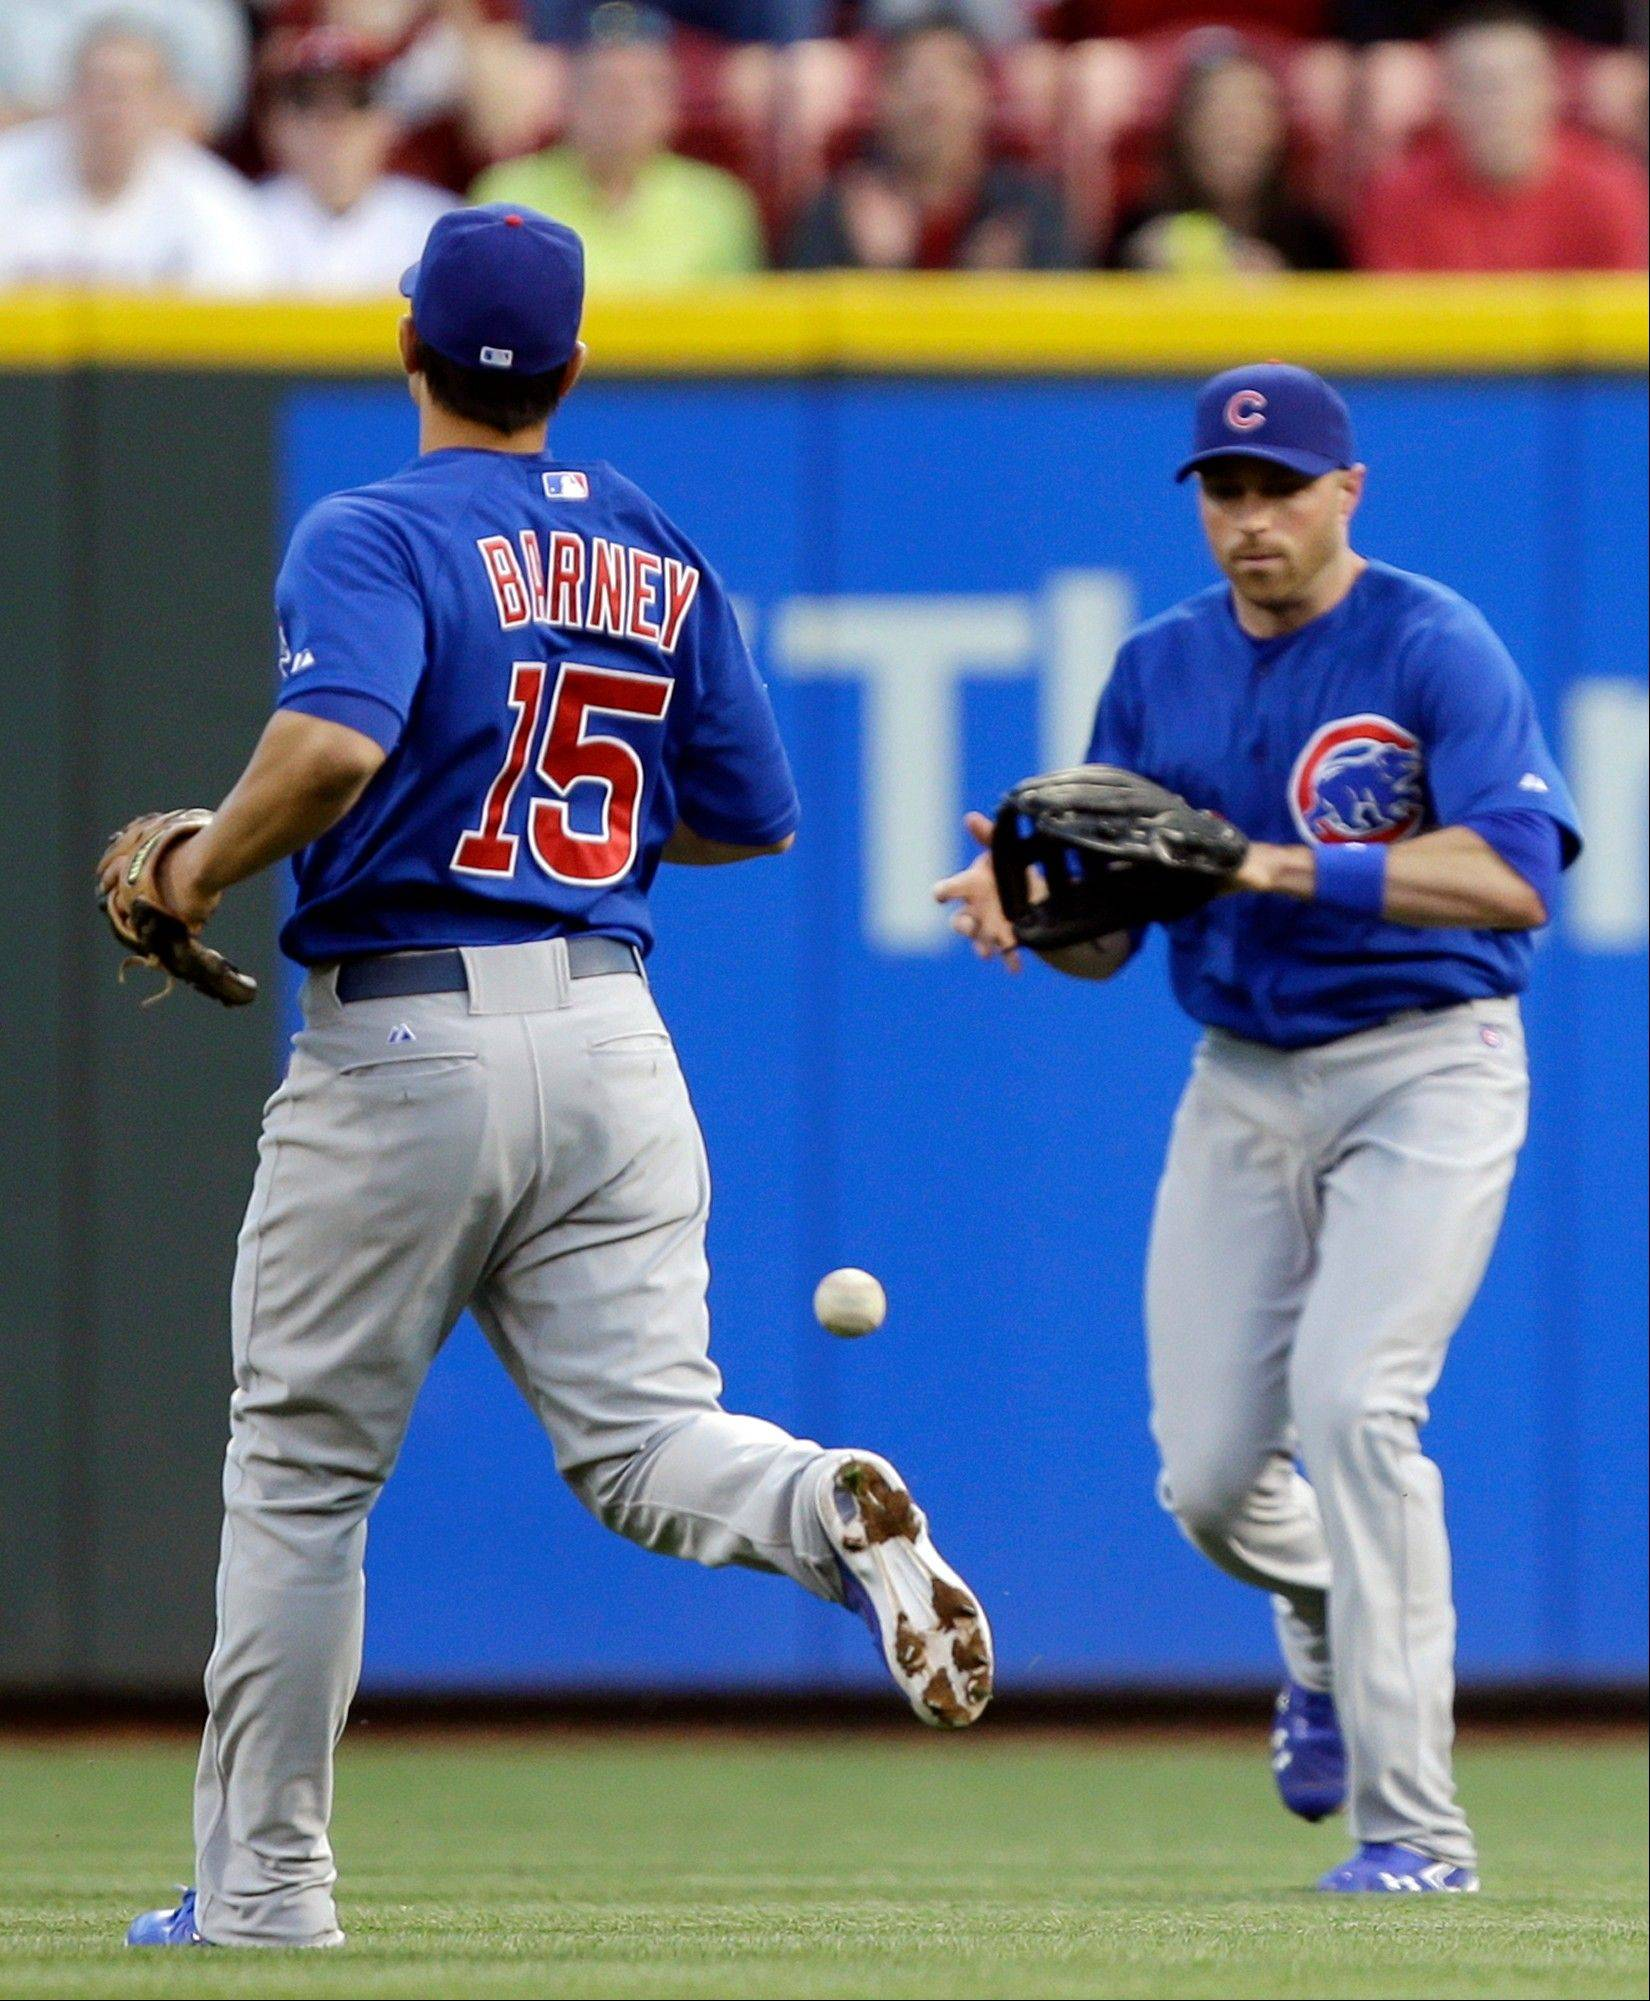 A basehit by the Reds� Devin Mesoraco falls between Cubs second baseman Darwin Barney and right fielder Nate Schierholtz in the third inning Mondayin Cincinnati.